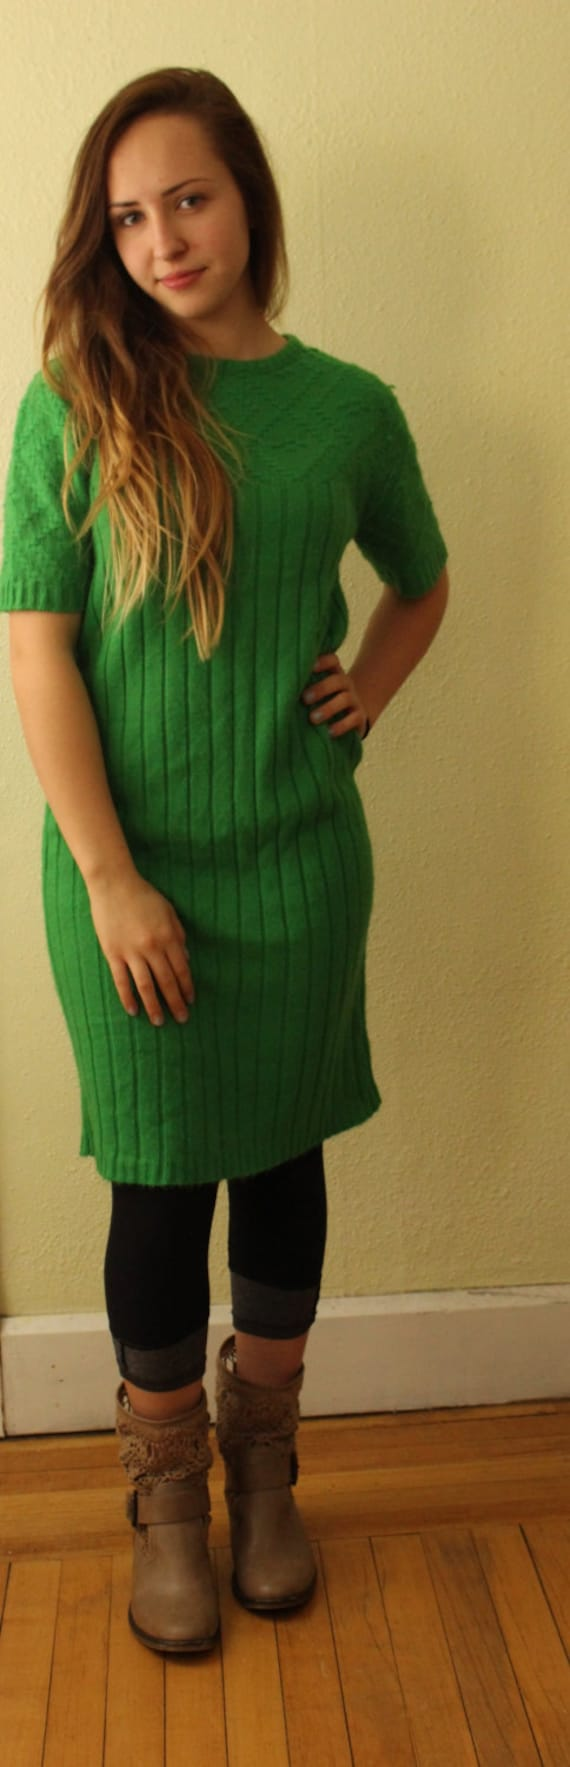 Vintage Sweater Green with Envy Sweater Dress Kel… - image 2